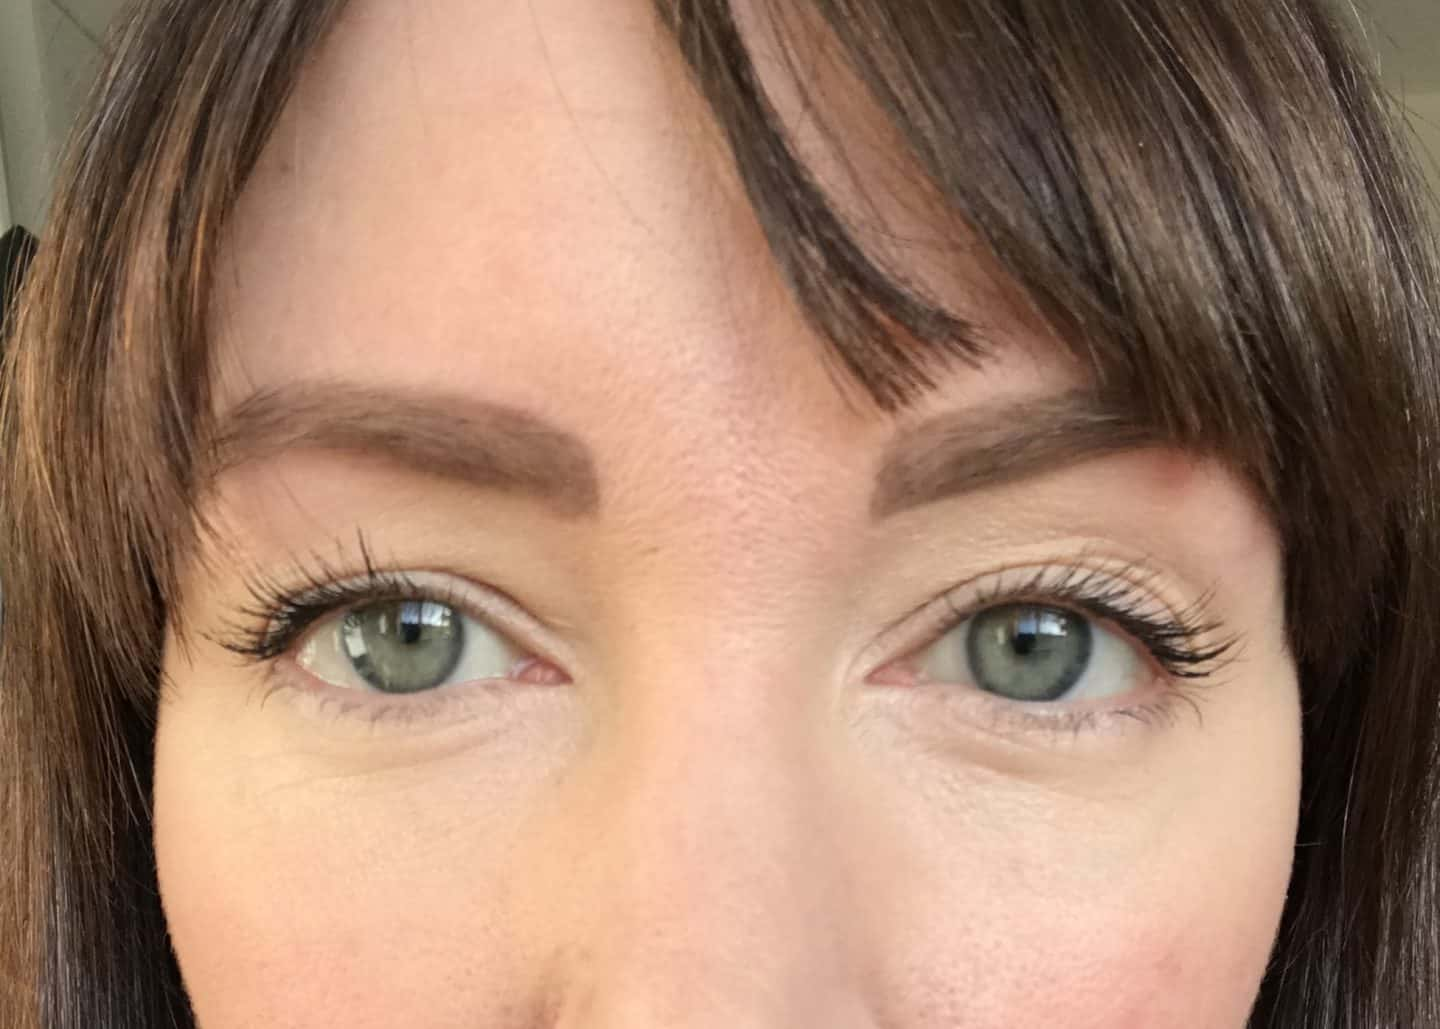 Disguise Dark Undereye Circles and distract with mascara